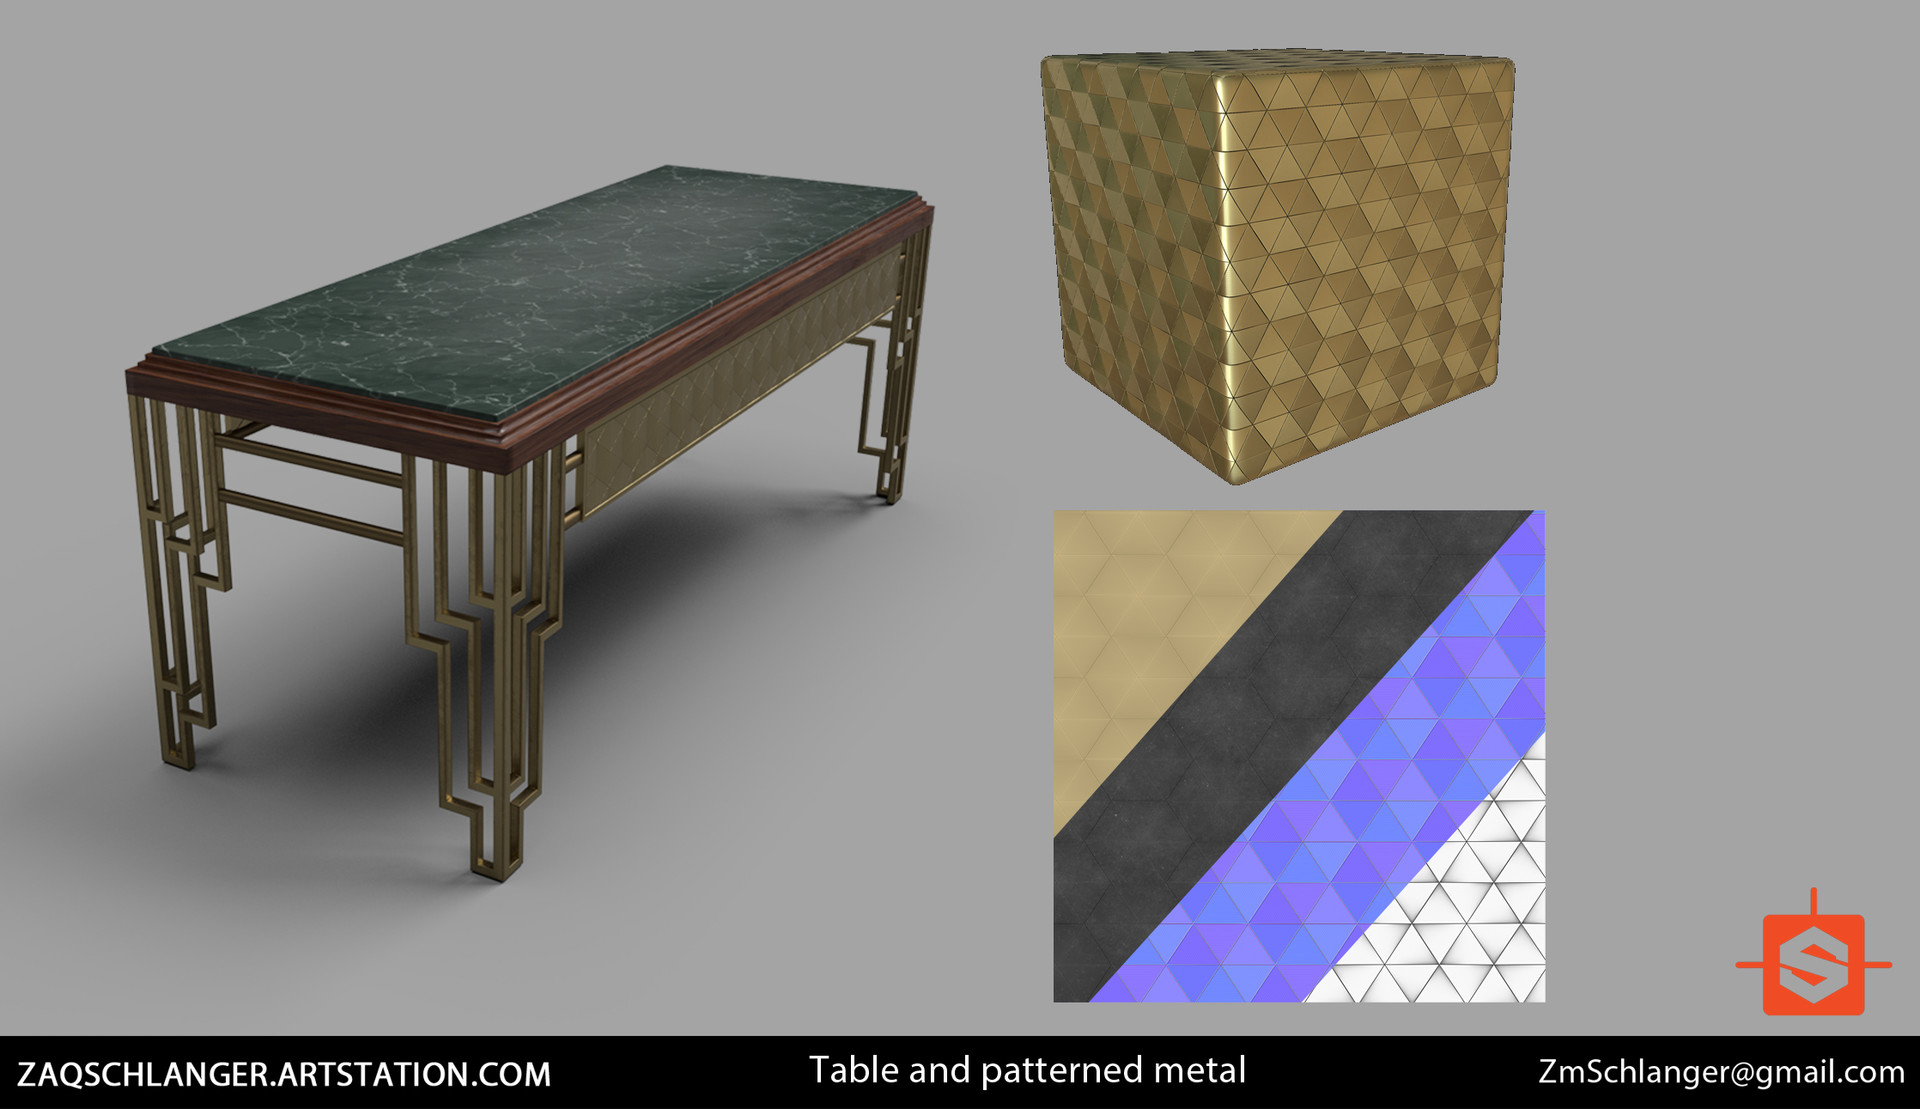 Fully procedural metallic pattern material made in Substance Designer